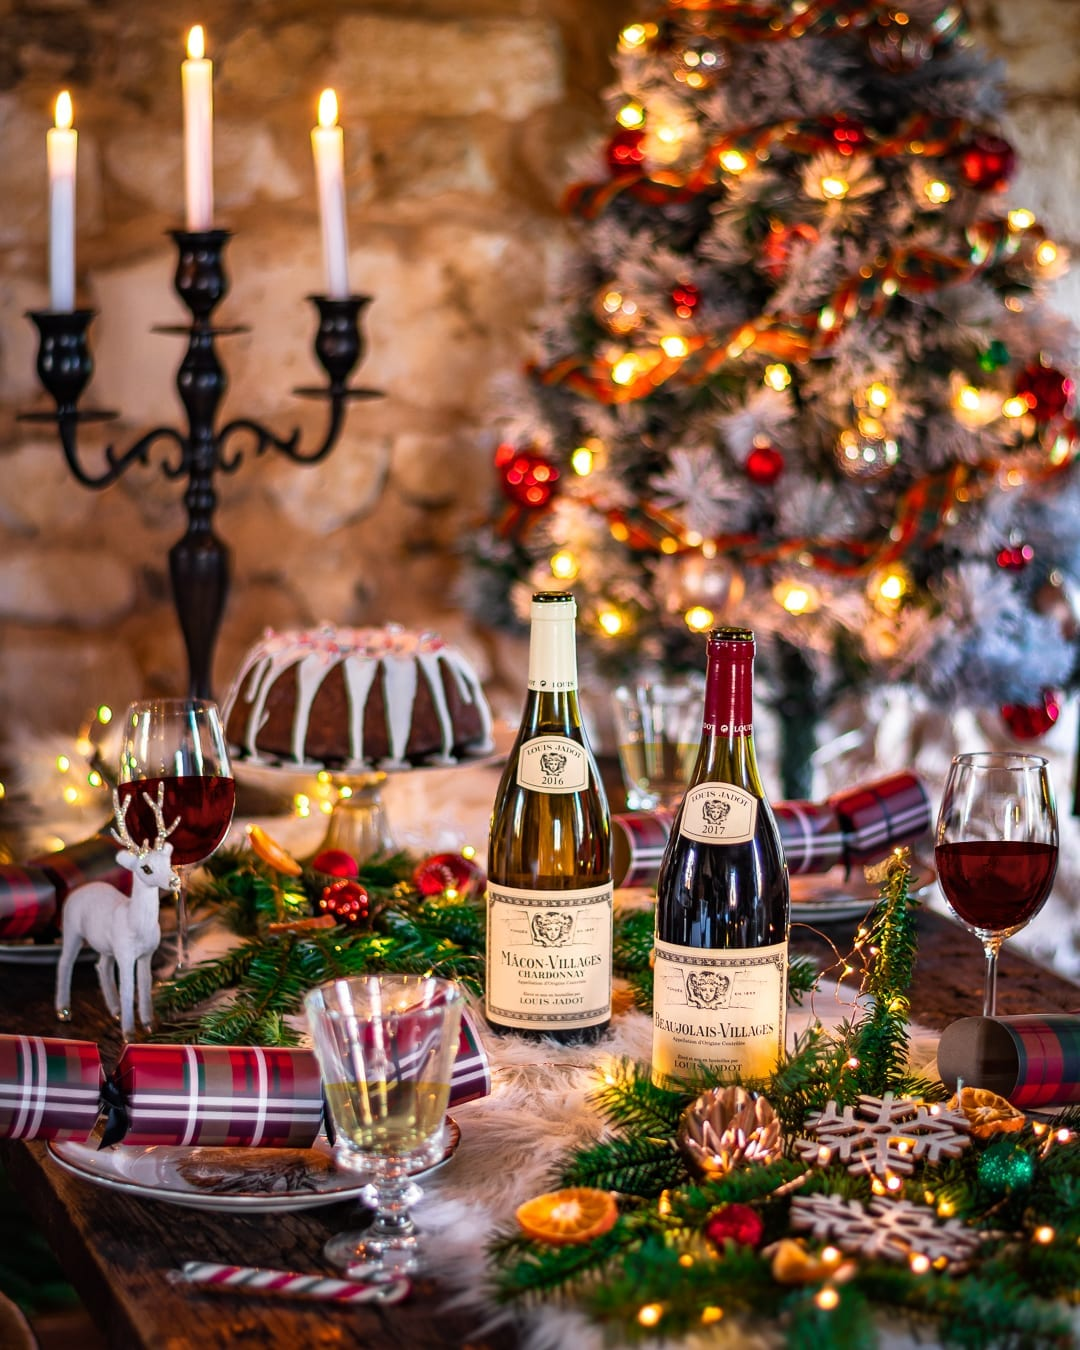 Louis Jadot red wine, white wine, Christmas setting, holiday